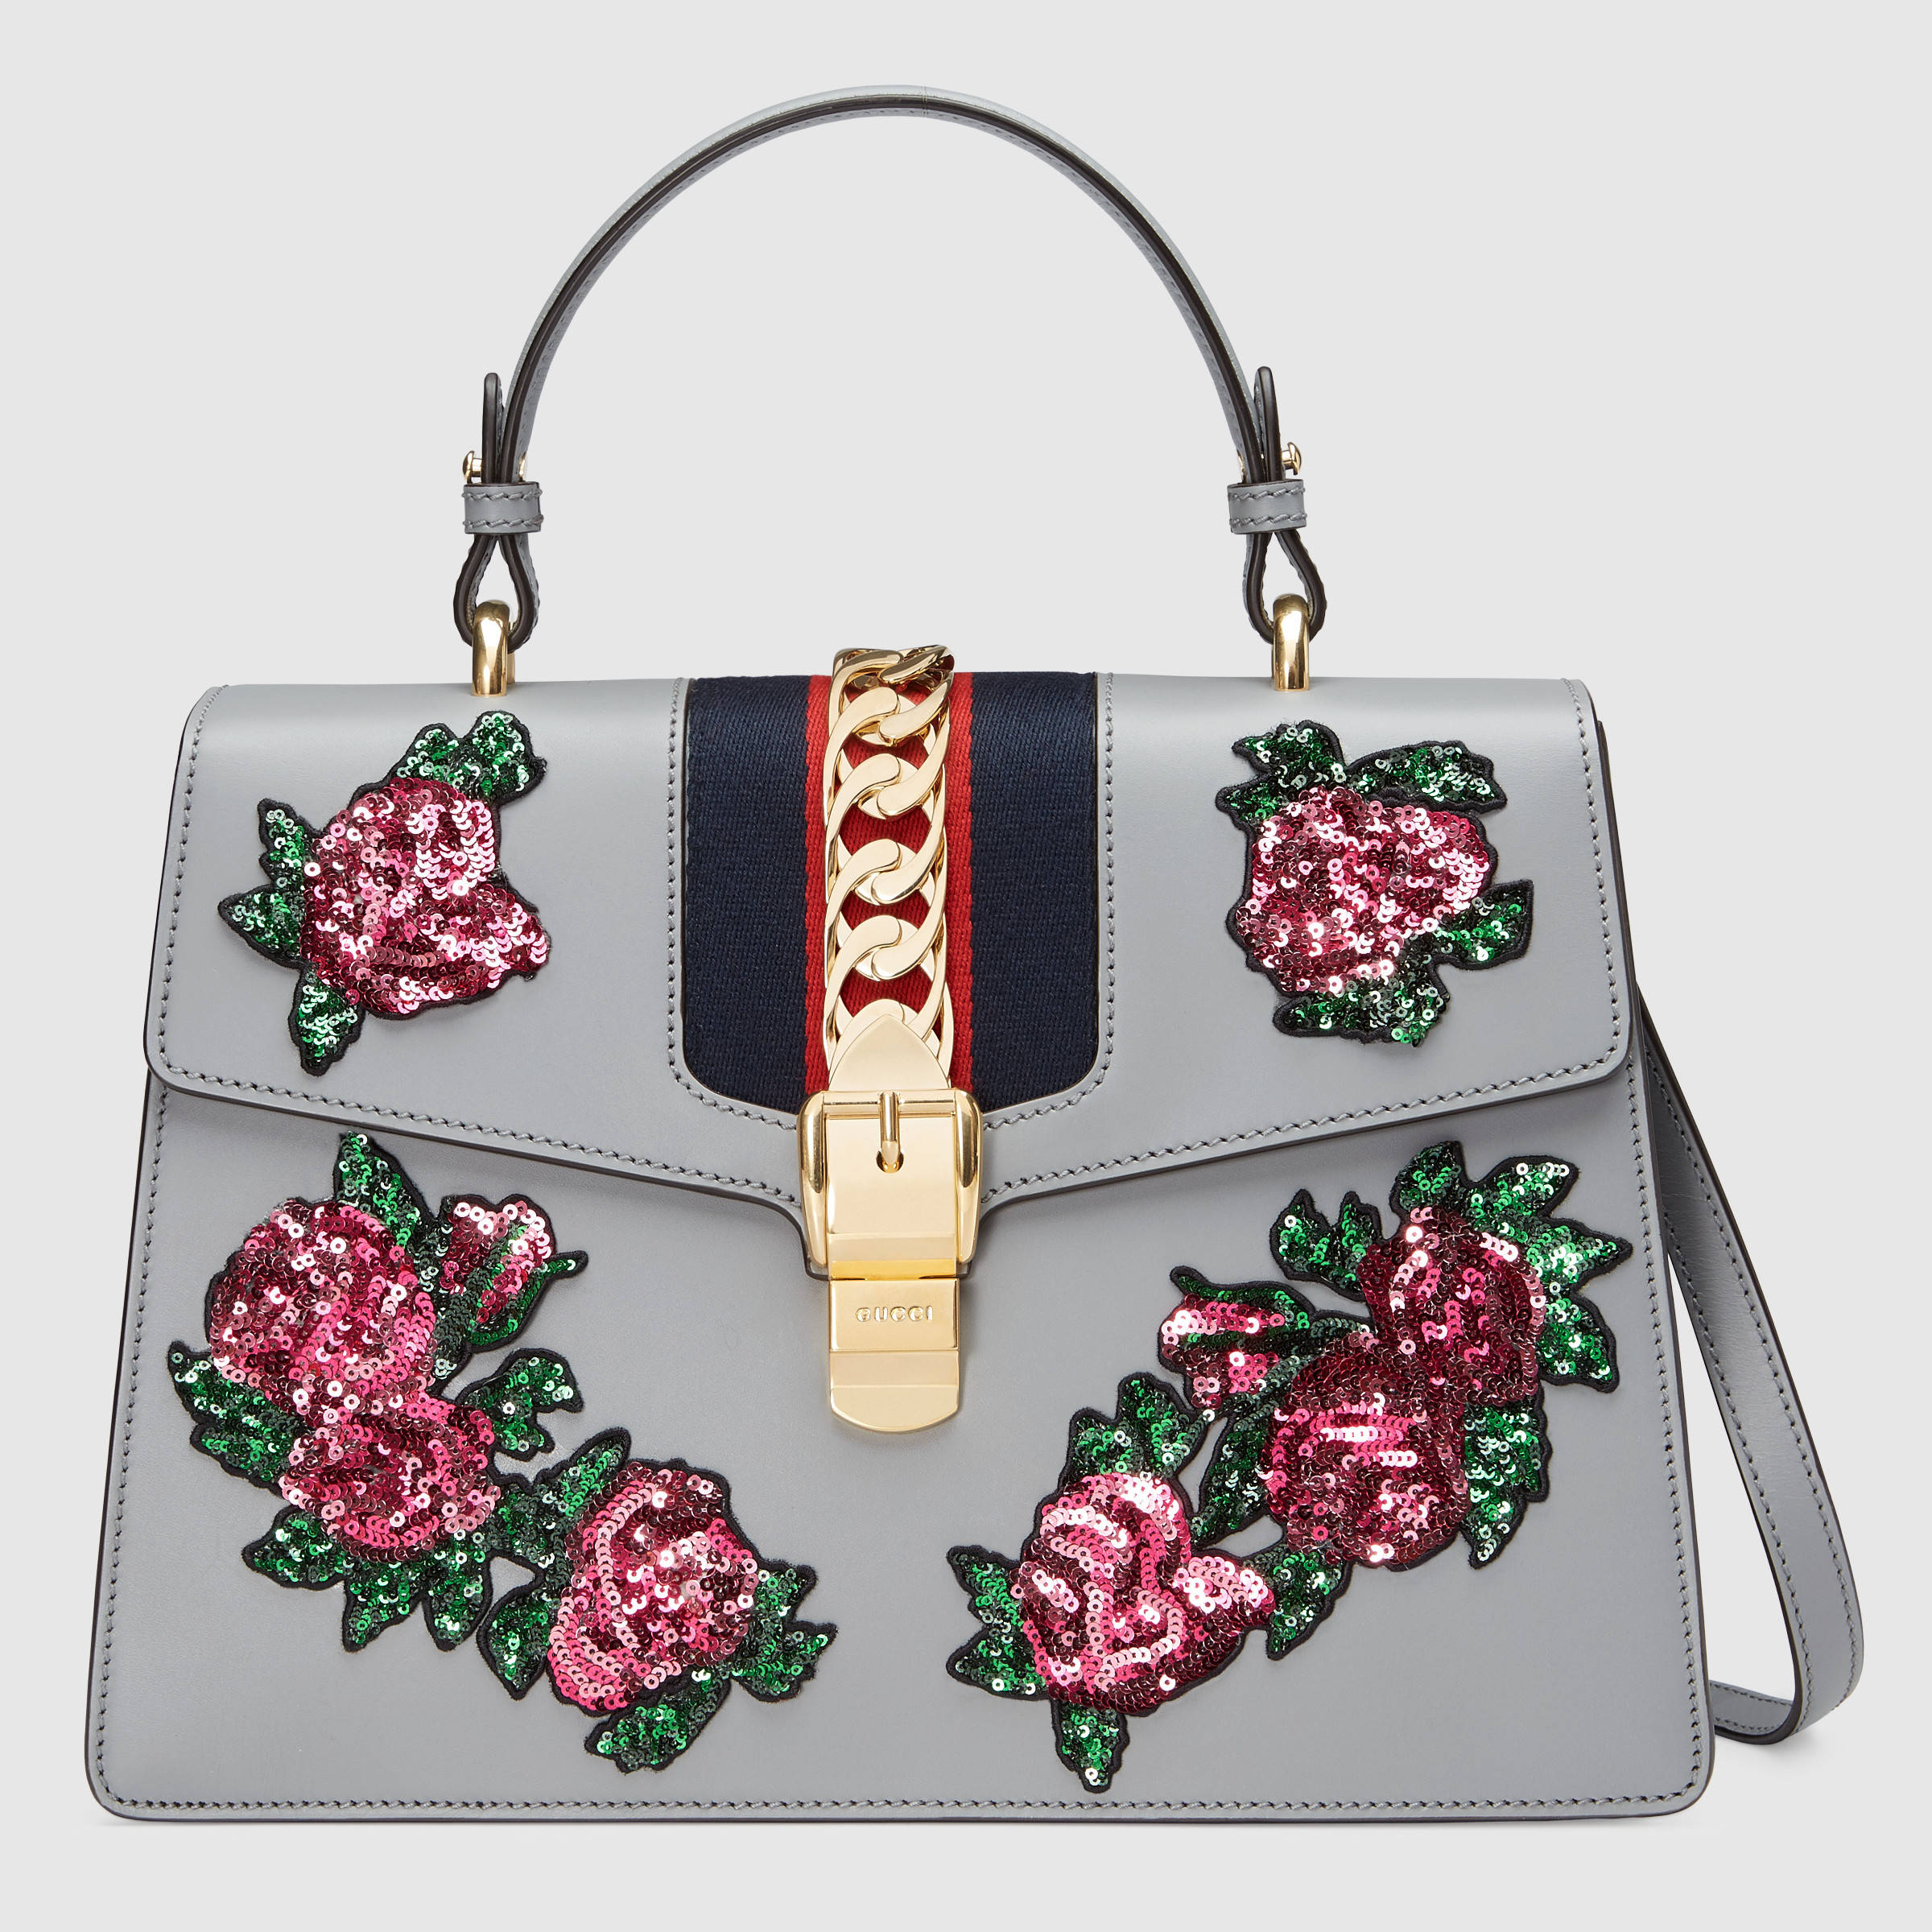 Light-Sylvie-embroidered-leather-top-handle-bag GUCCI.jpg